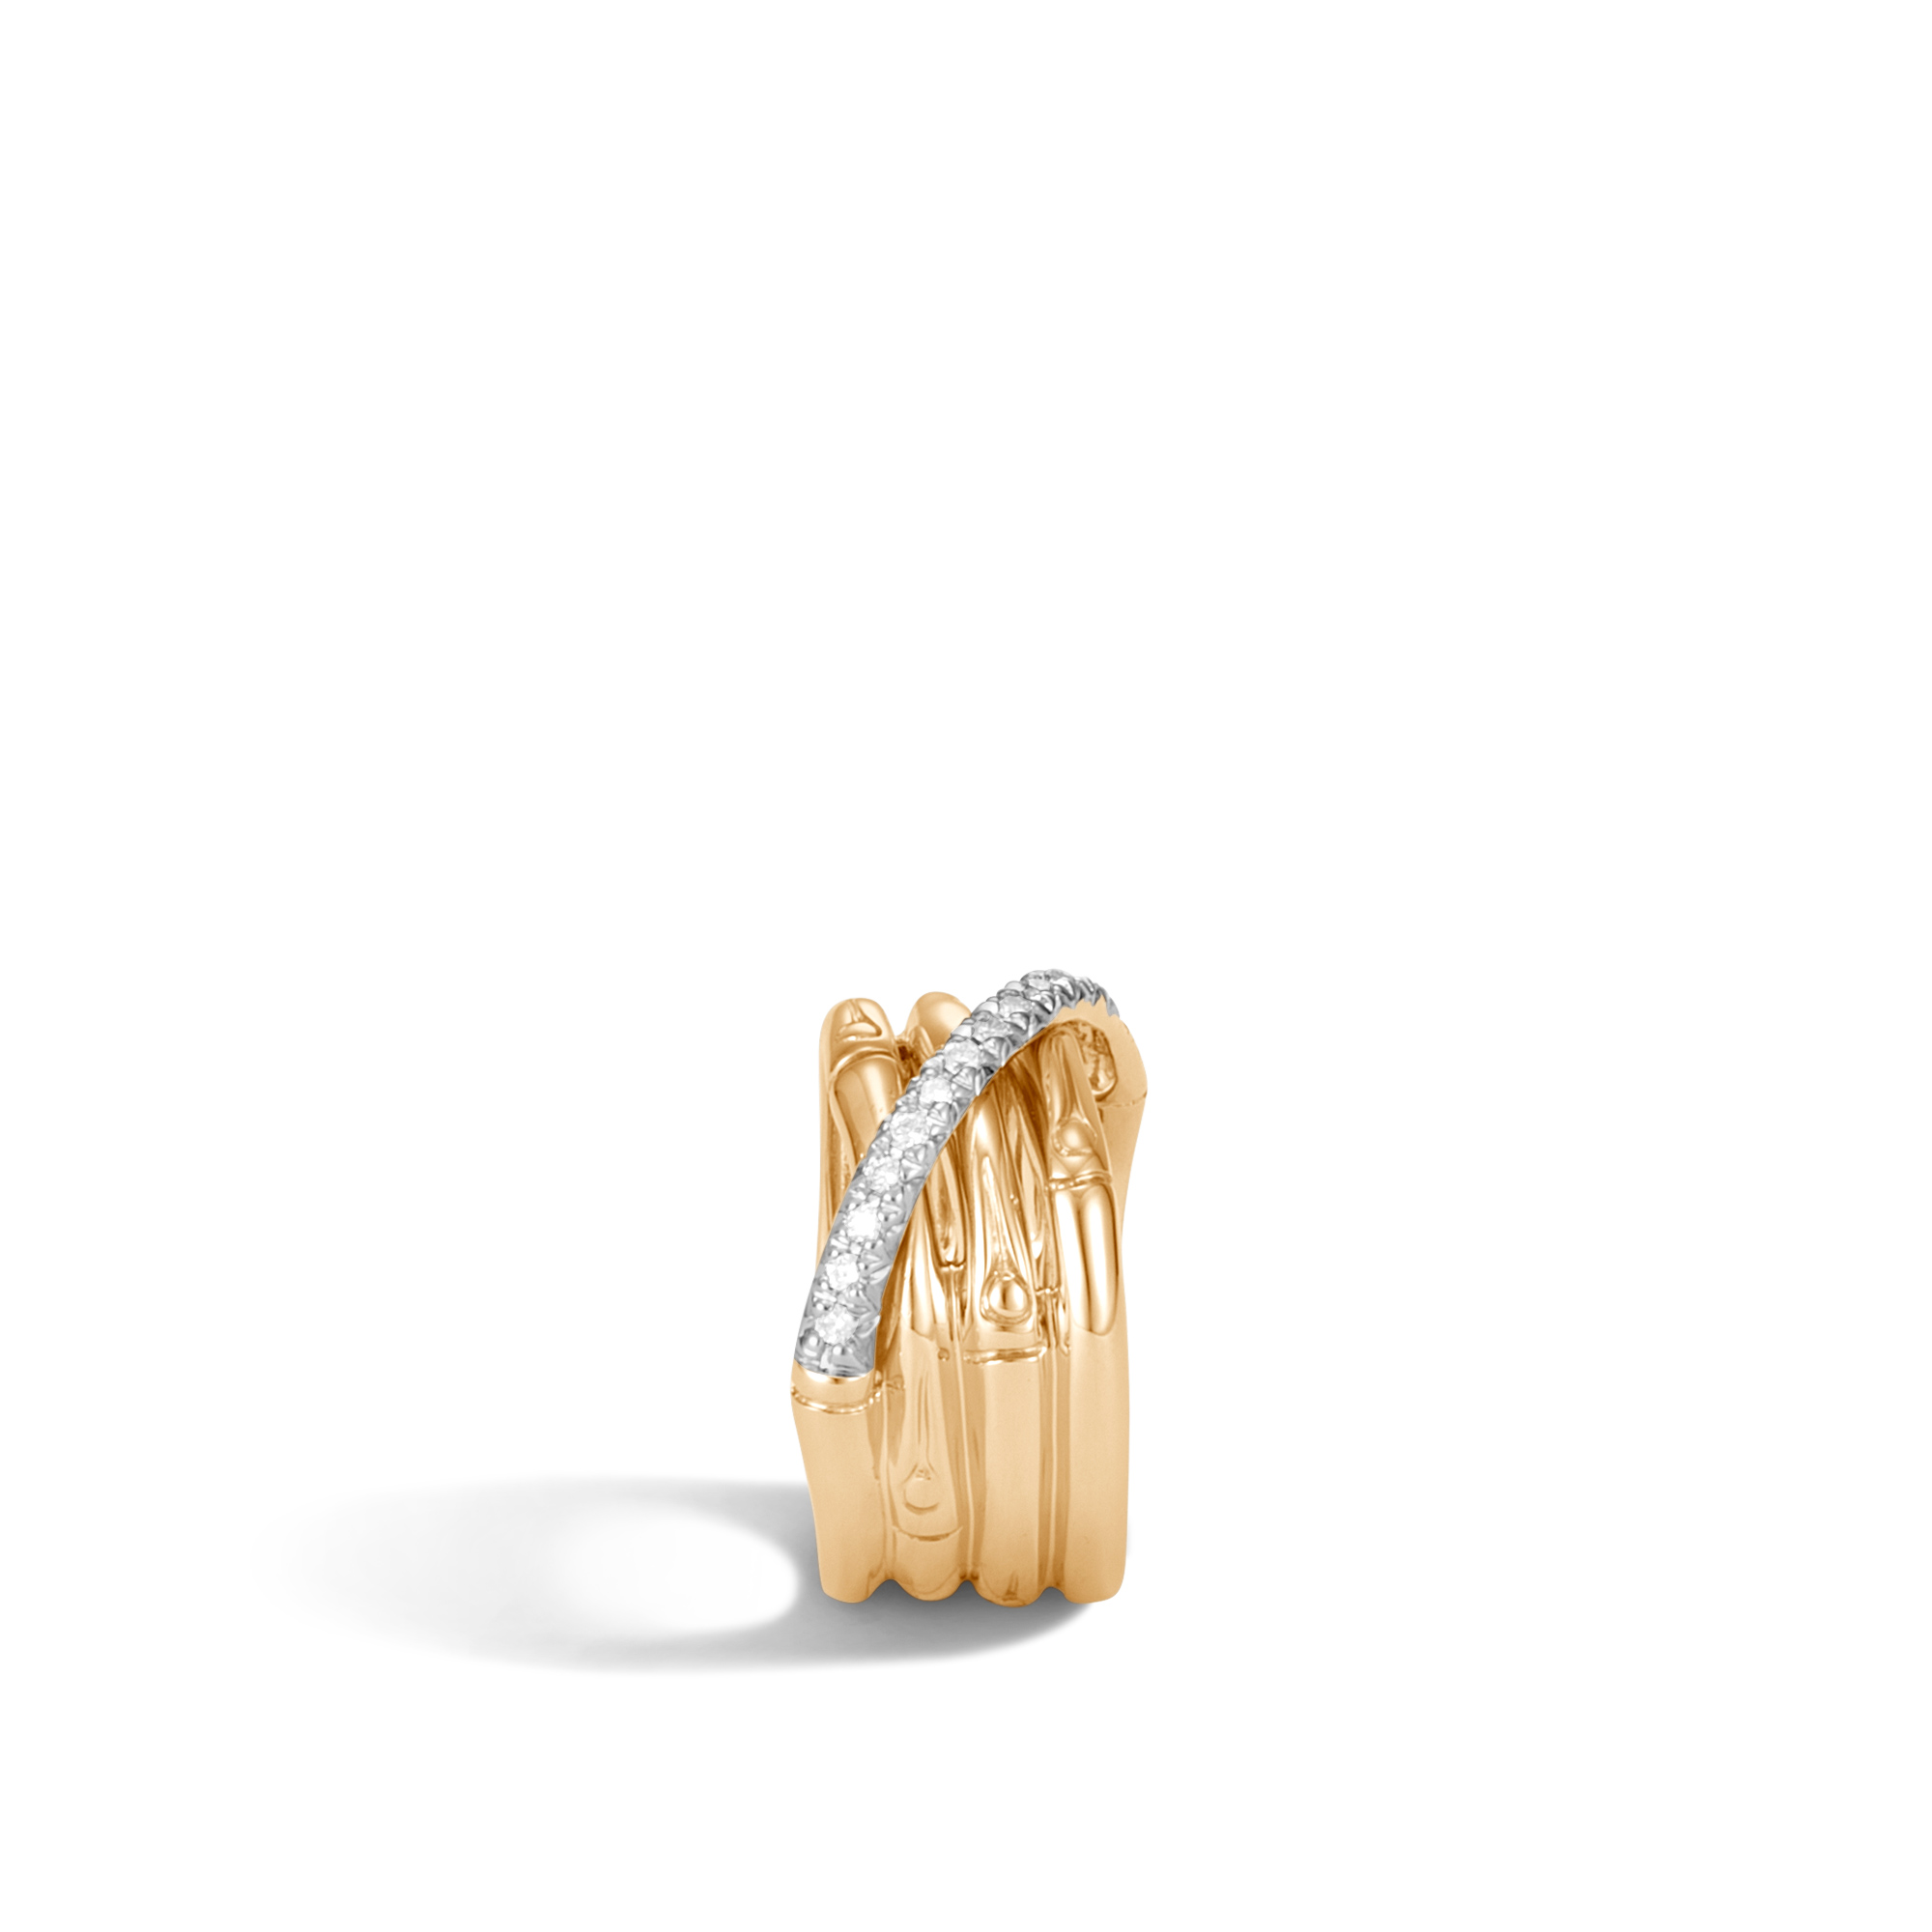 Bamboo 14MM Band Ring in 18K Gold with  Diamonds, White Diamond, large